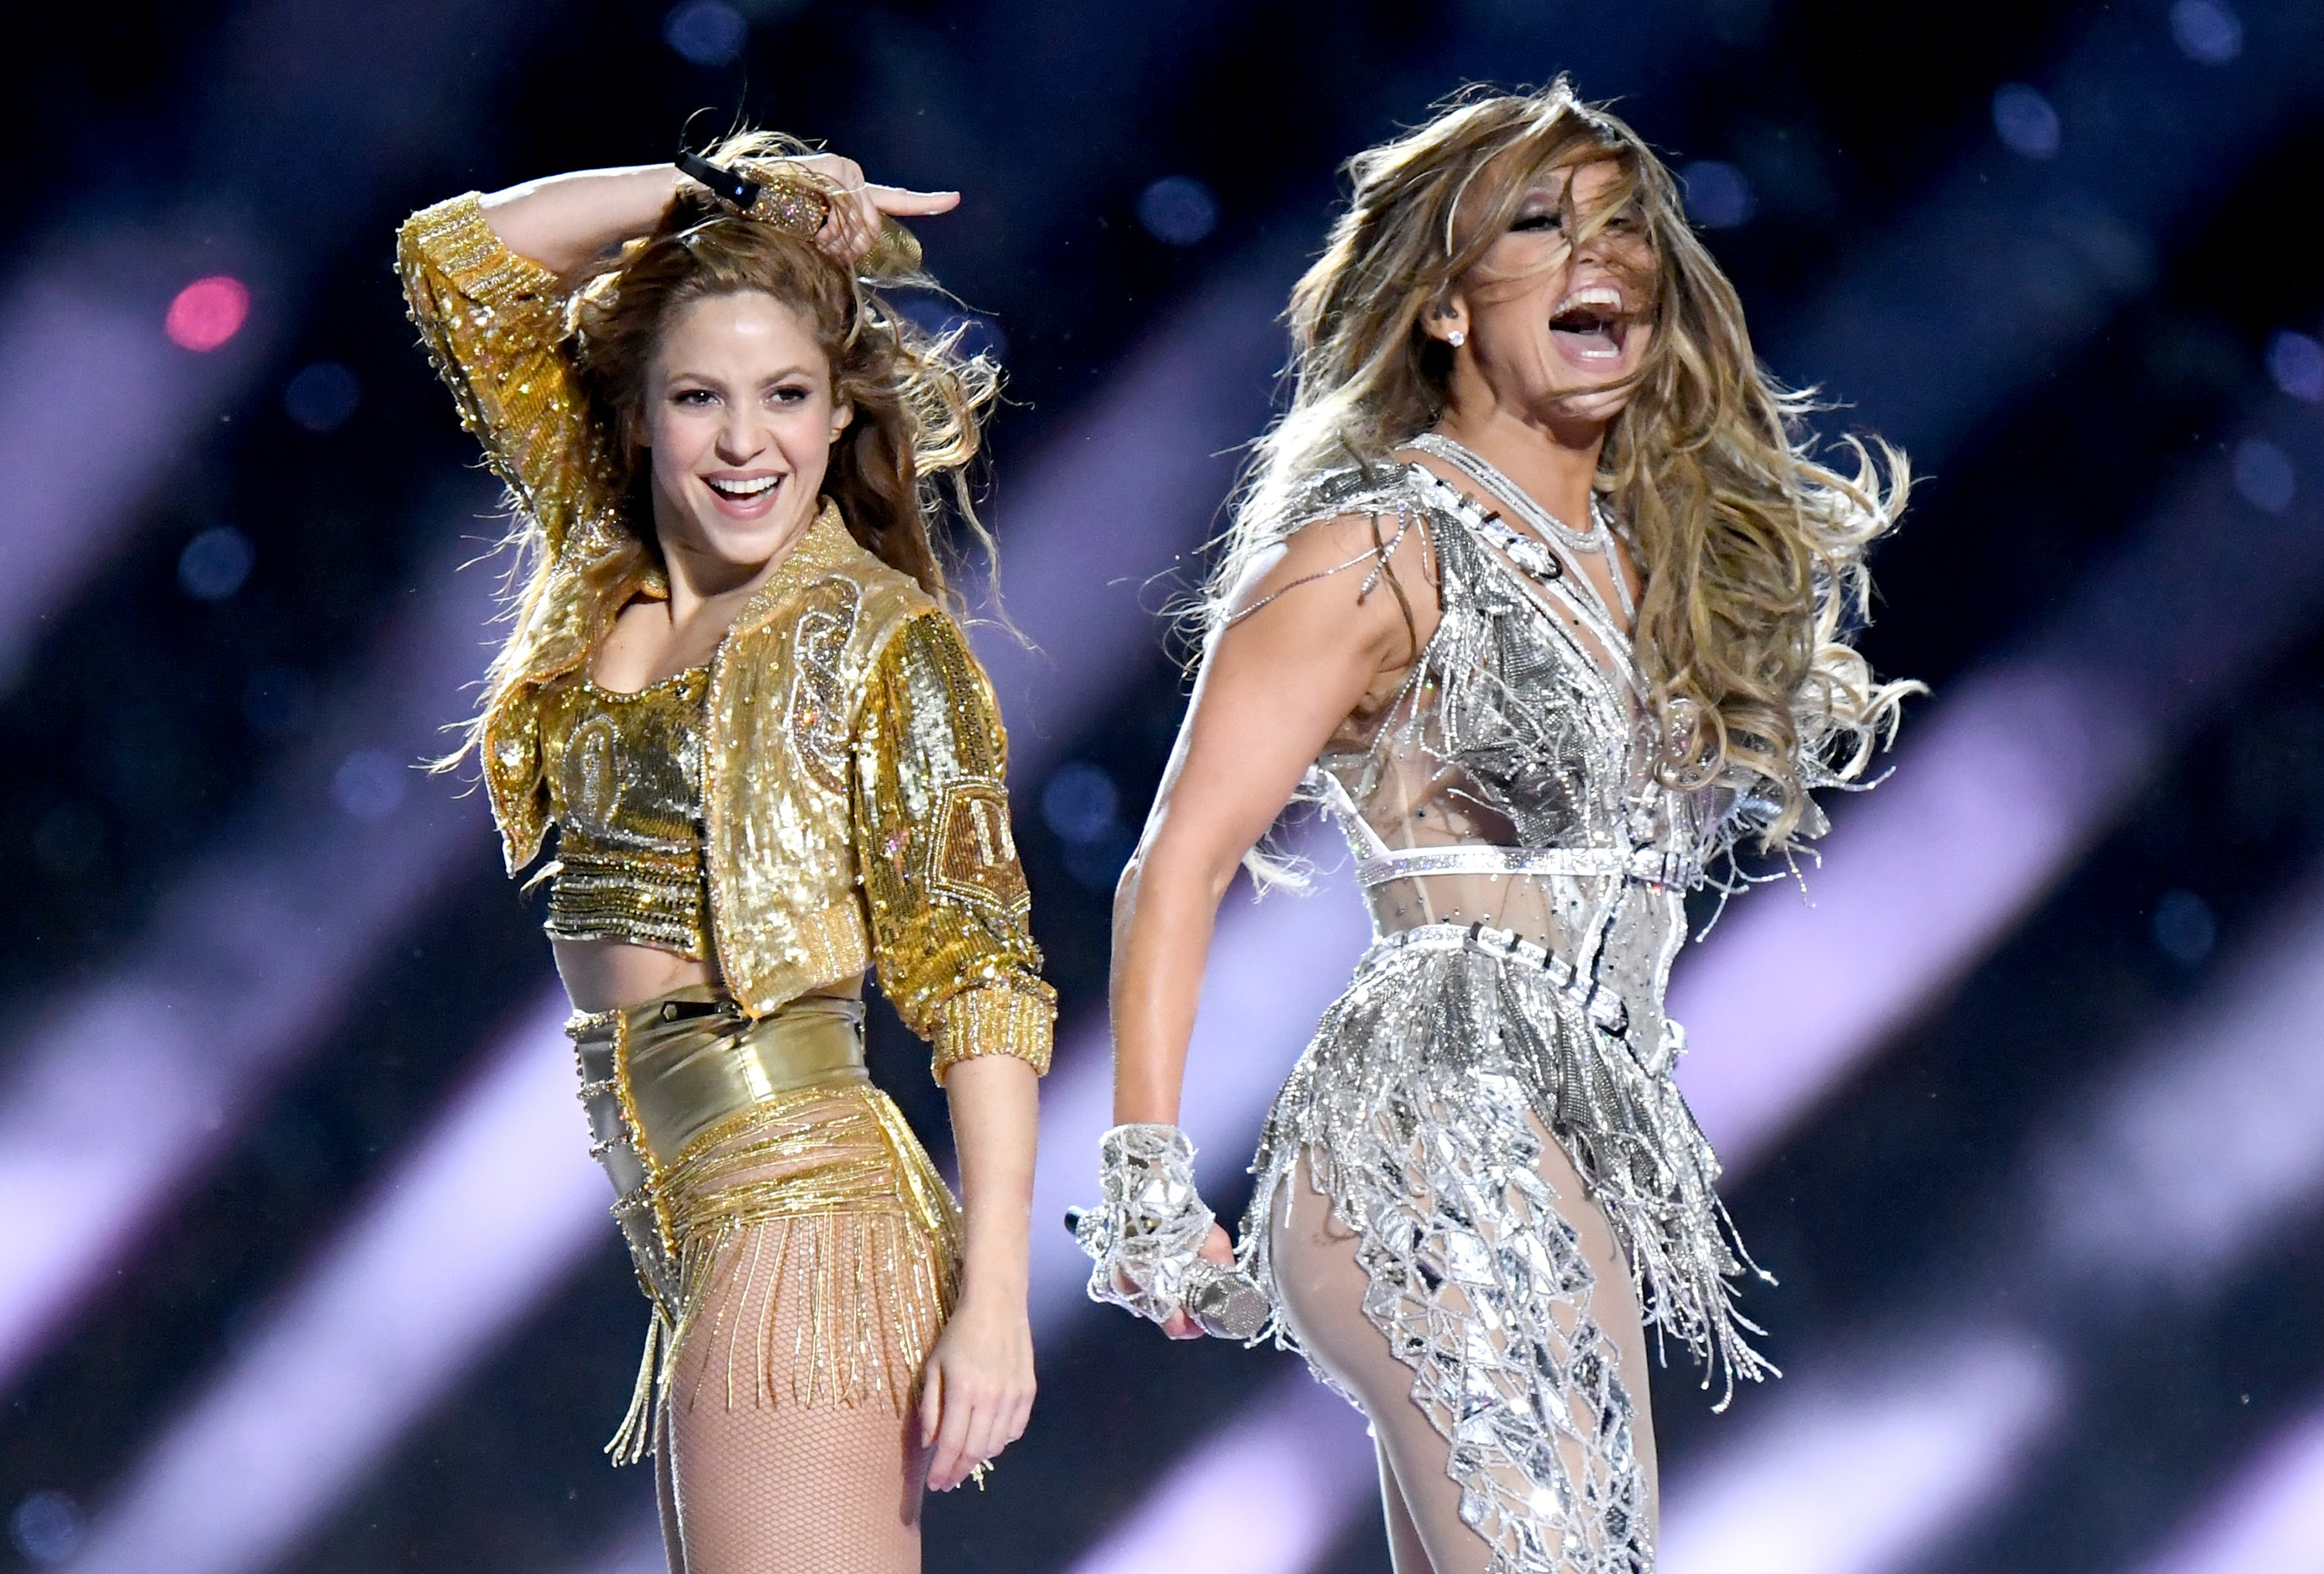 Image Credit: Getty Images / Shakira and Jennifer Lopez performing at the Super Bowl LIV Halftime Show.